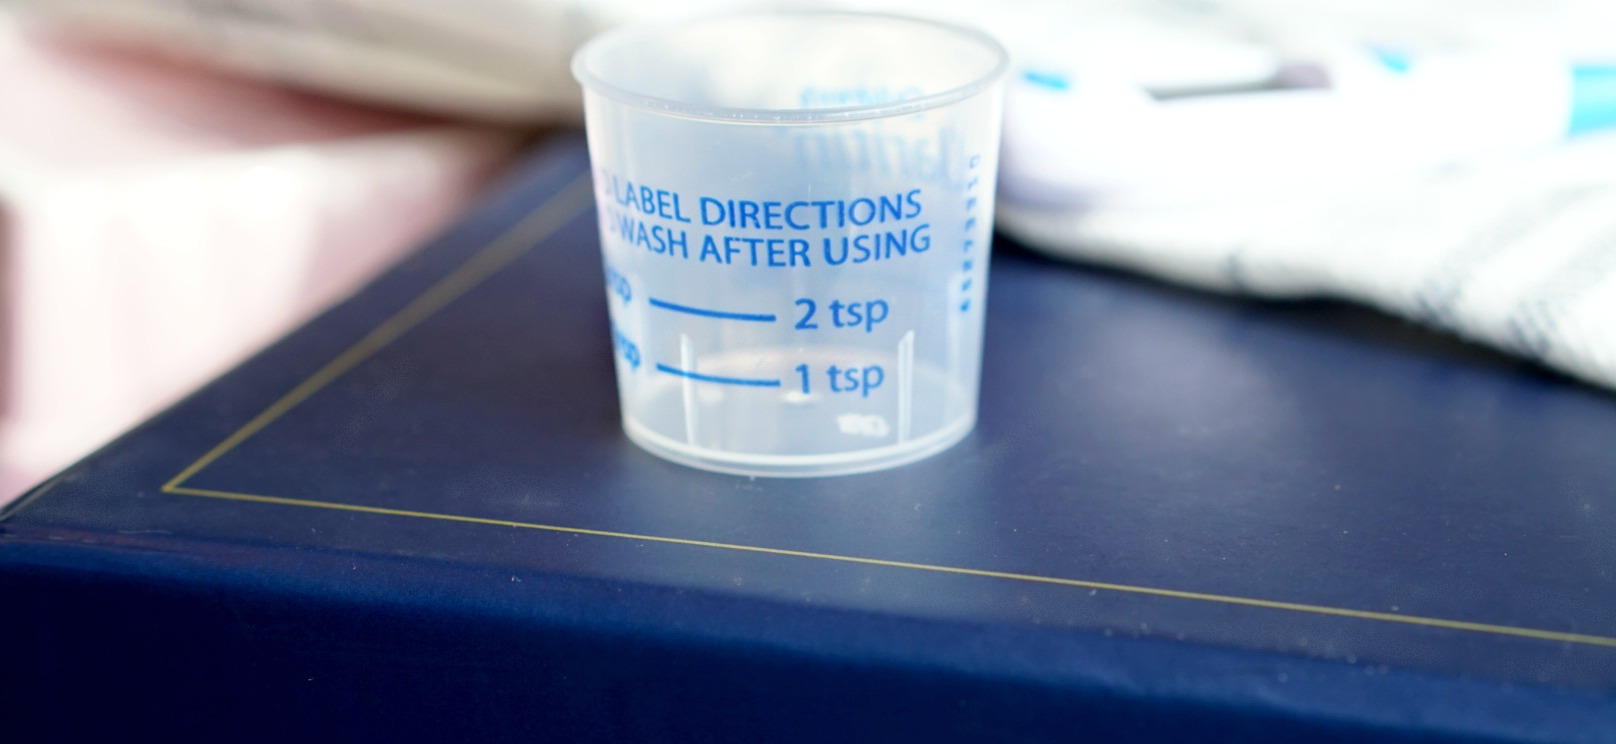 medication measuring cup